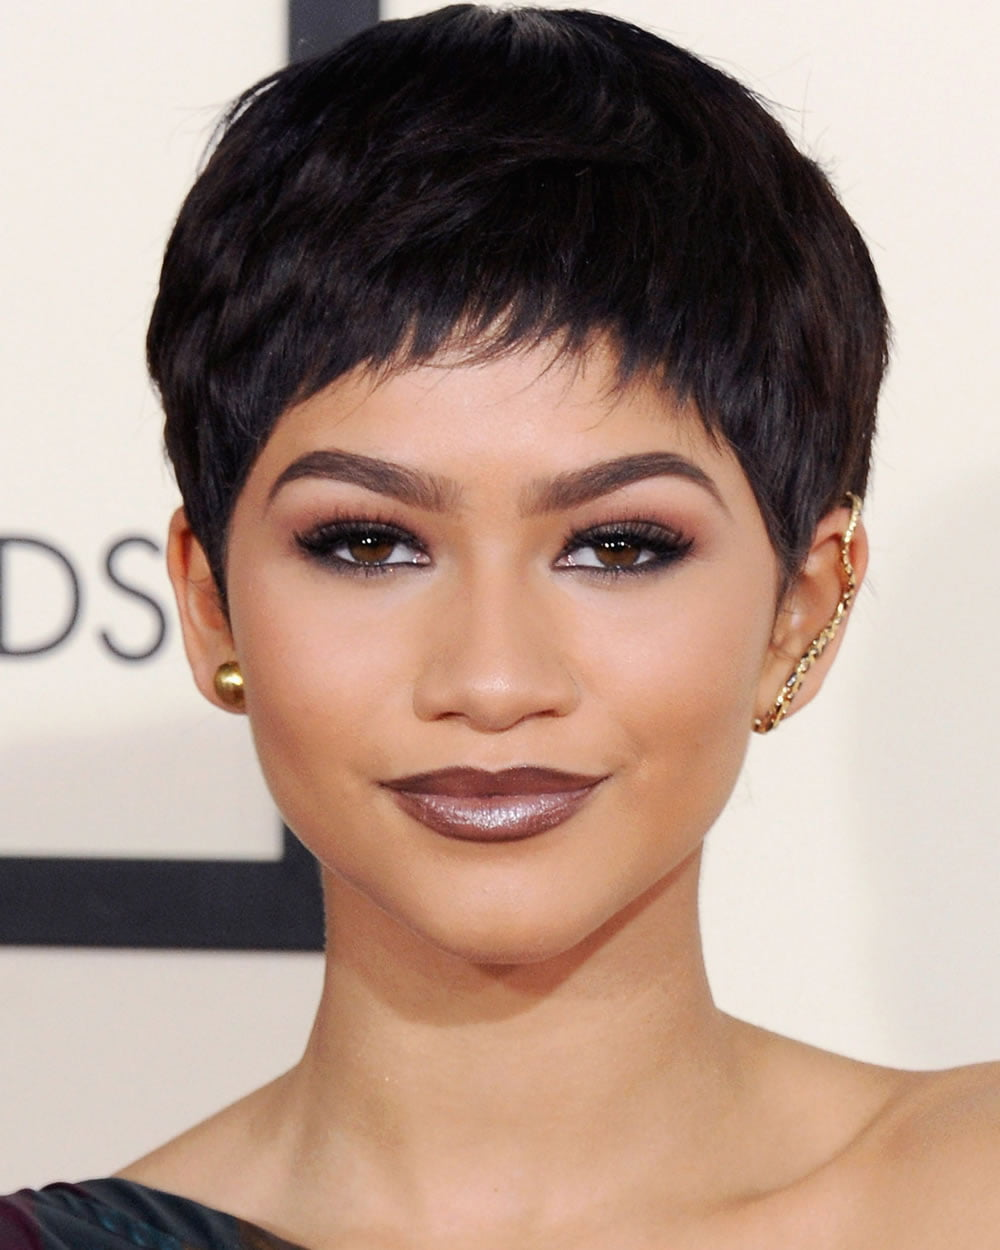 10 Best Short Fringe Haircuts